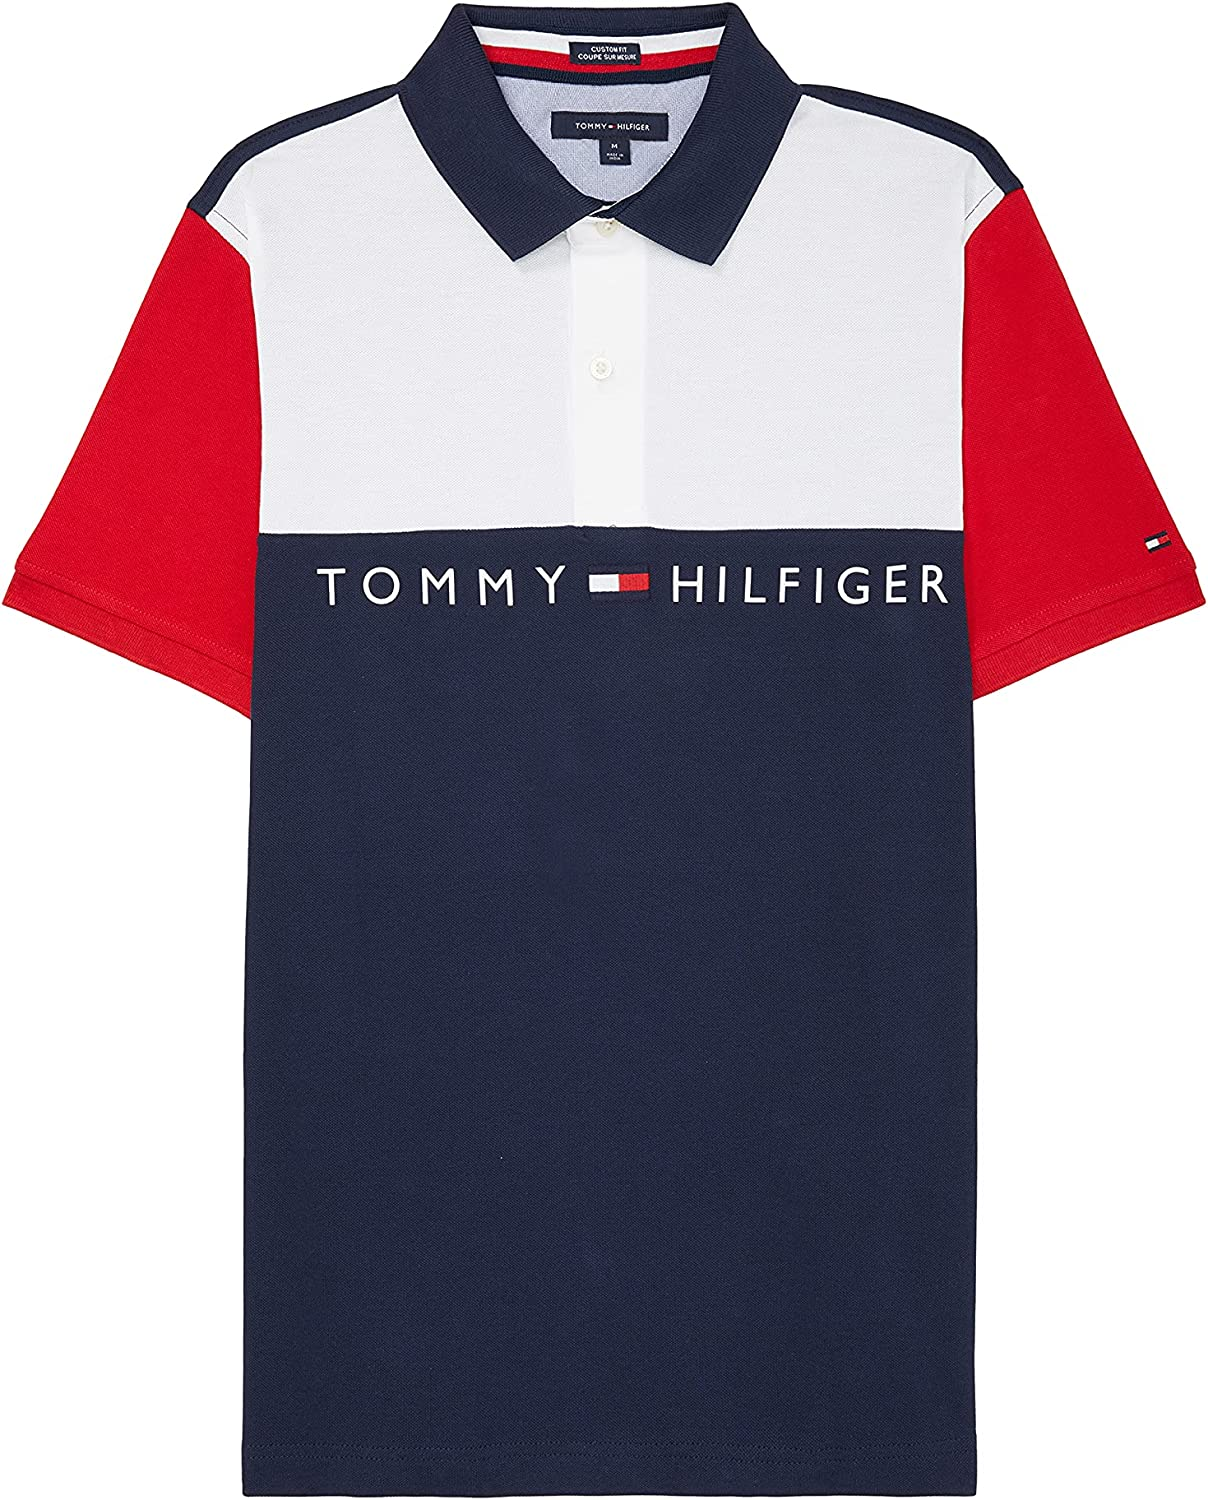 Tommy Hilfiger Adaptive Tommy Hilfiger Men's Adaptive Polo Shirt with Magnetic Buttons Custom Fit